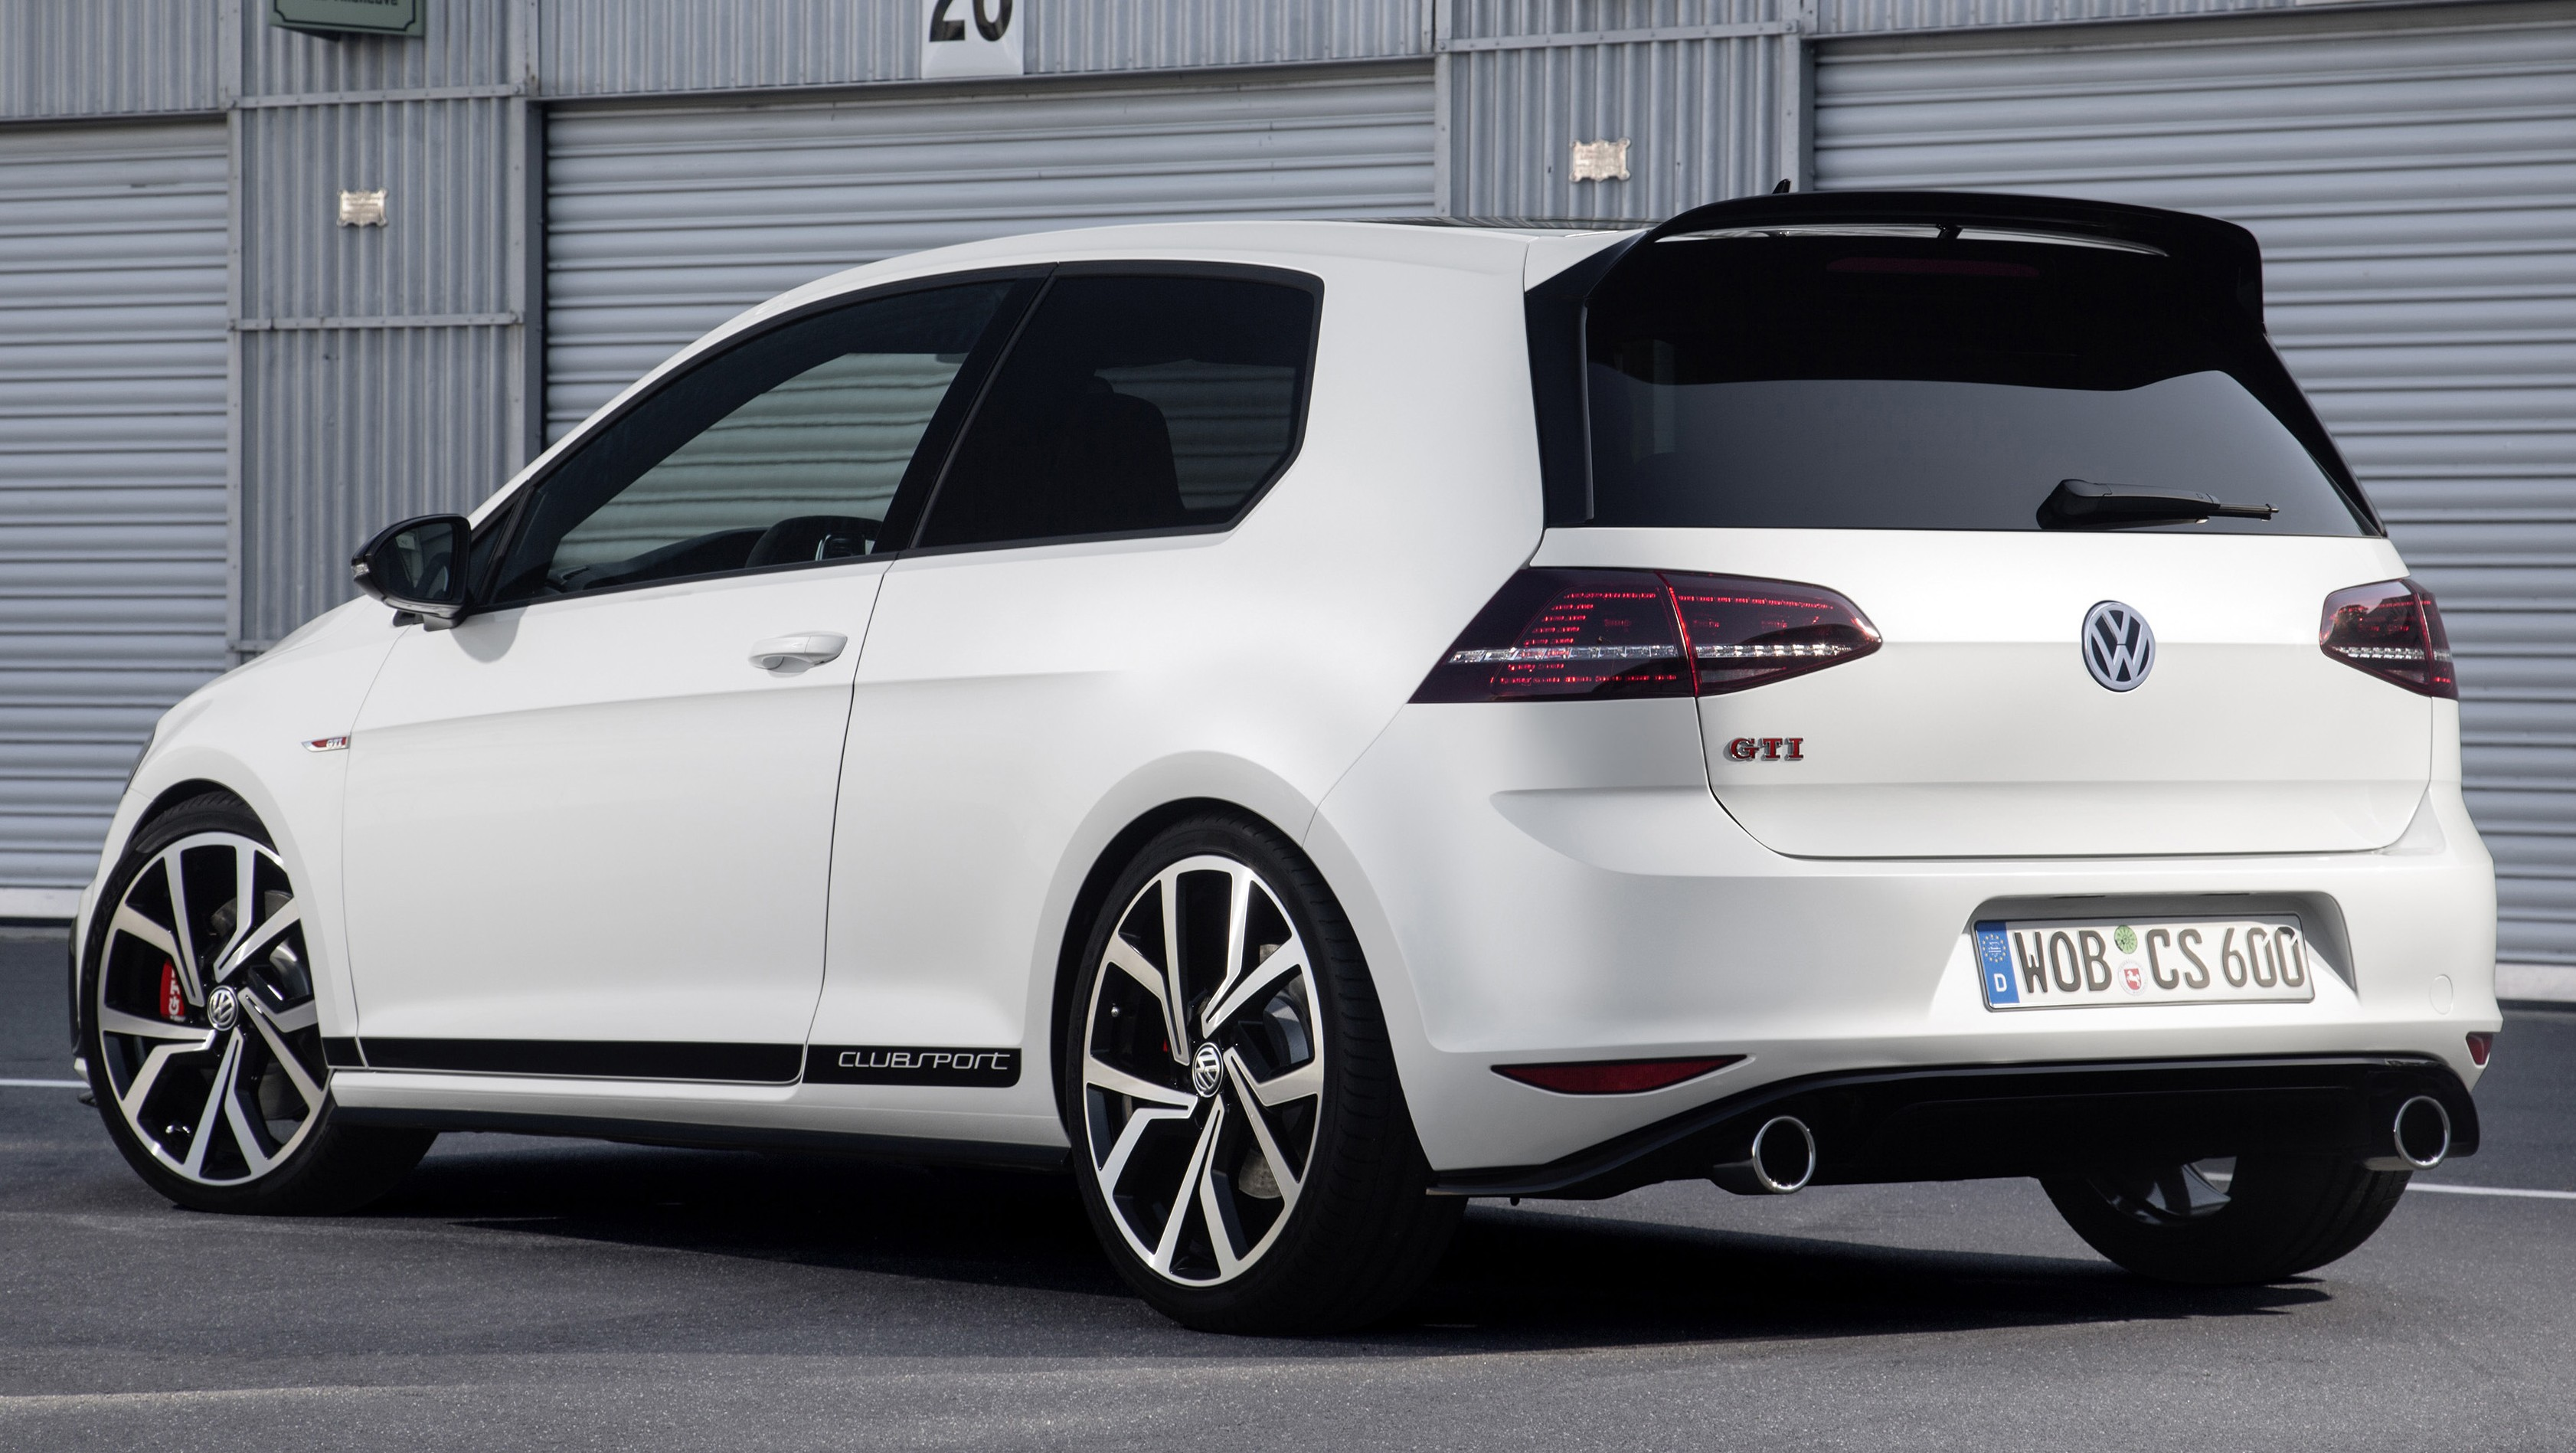 volkswagen golf gti clubsport unveiled celebrates 40th anniversary 261 hp 0 100 km h in 5 9. Black Bedroom Furniture Sets. Home Design Ideas